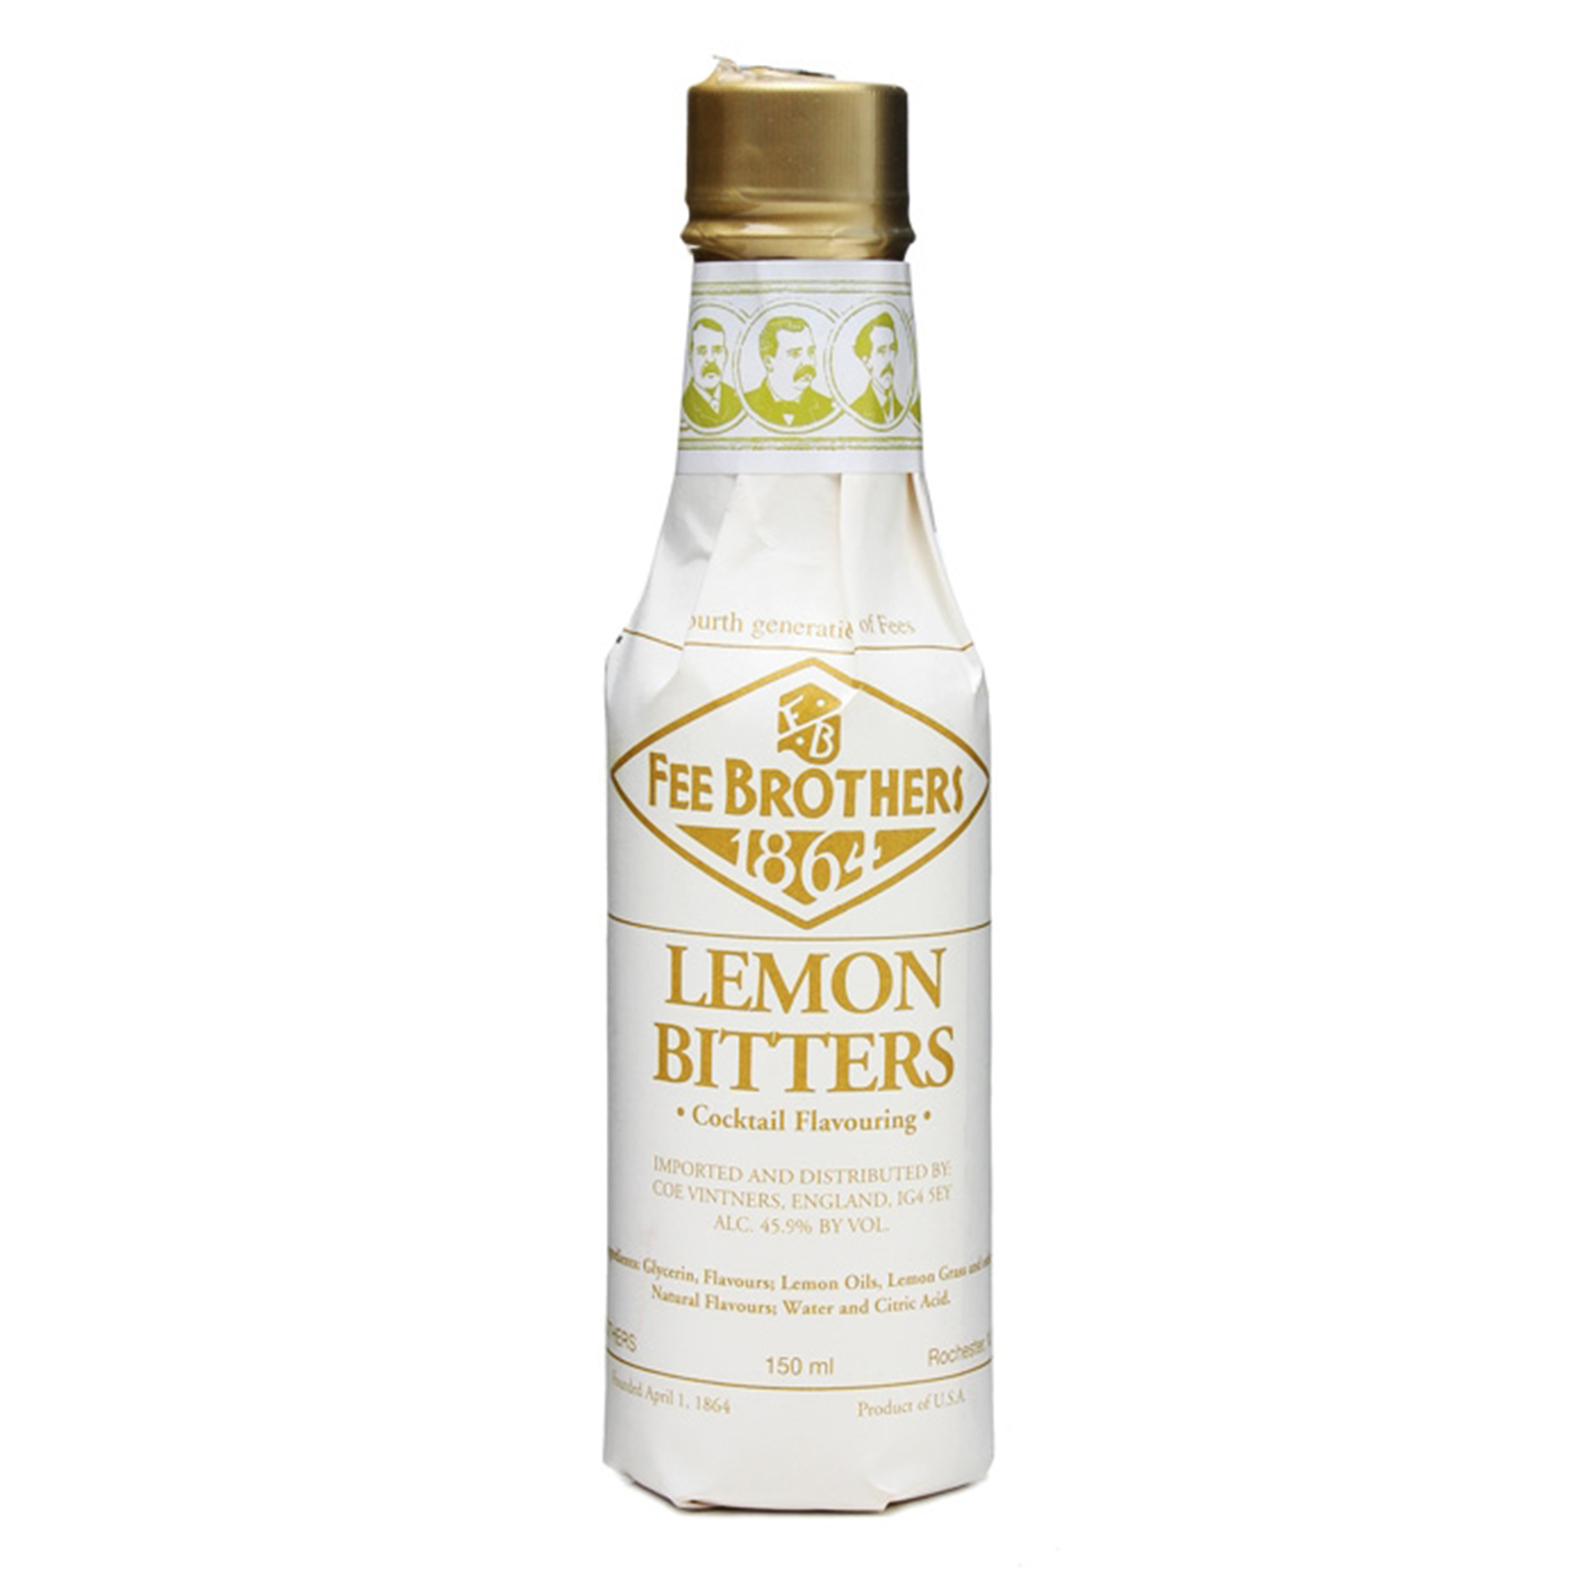 Fee Brothers 1864 Lemon Bitters - Bitter Aromatico - 15cl - Fee Brothers